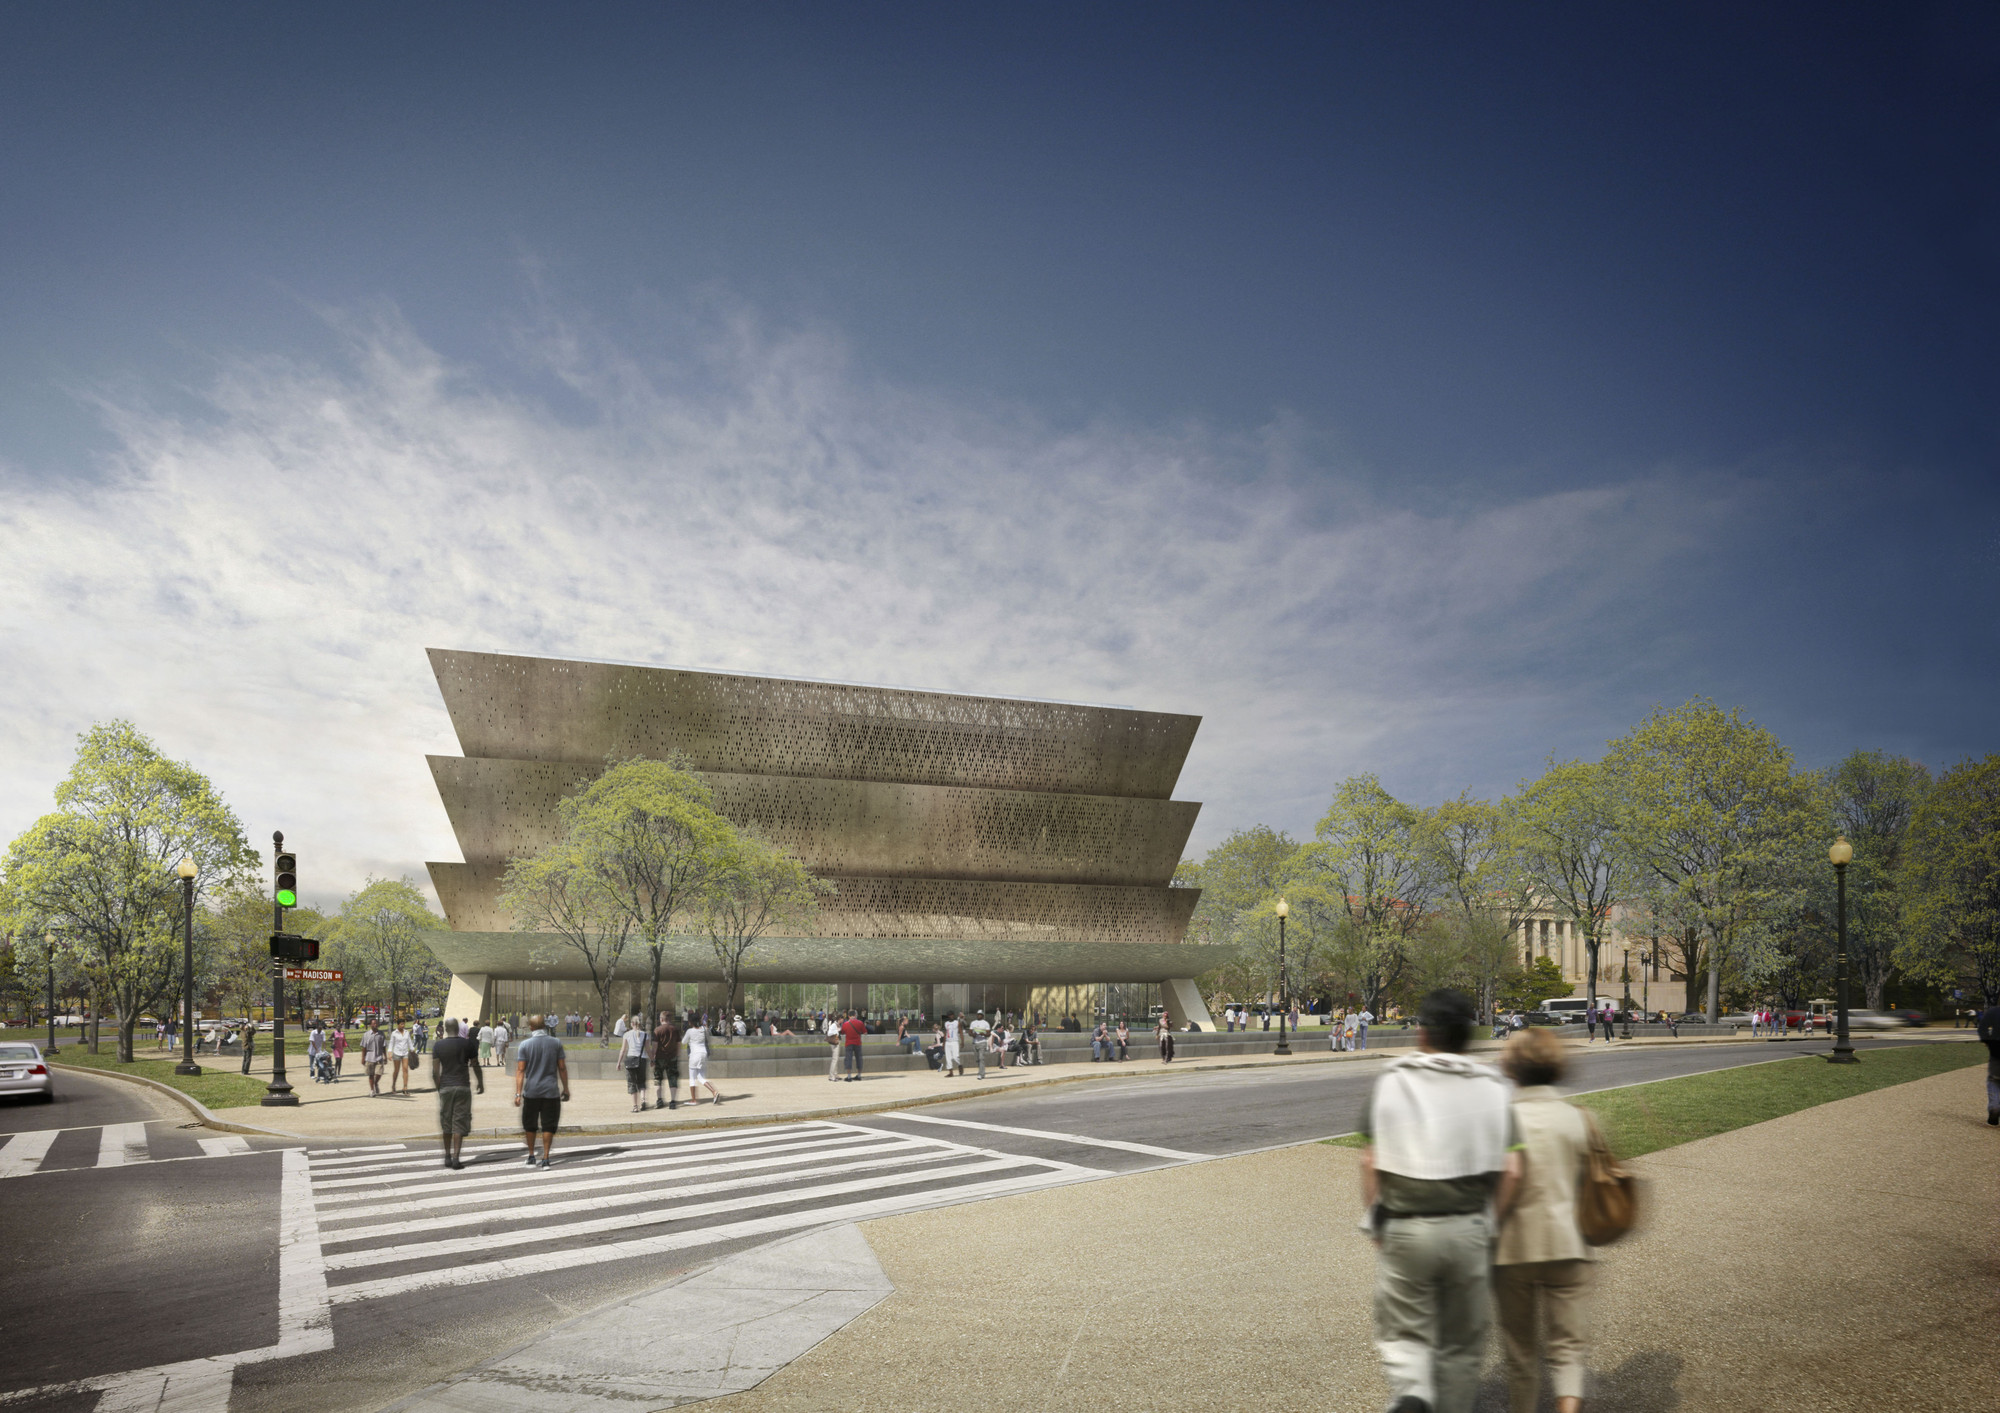 The smithsonian national museum of african american history and culture in washington dc usa